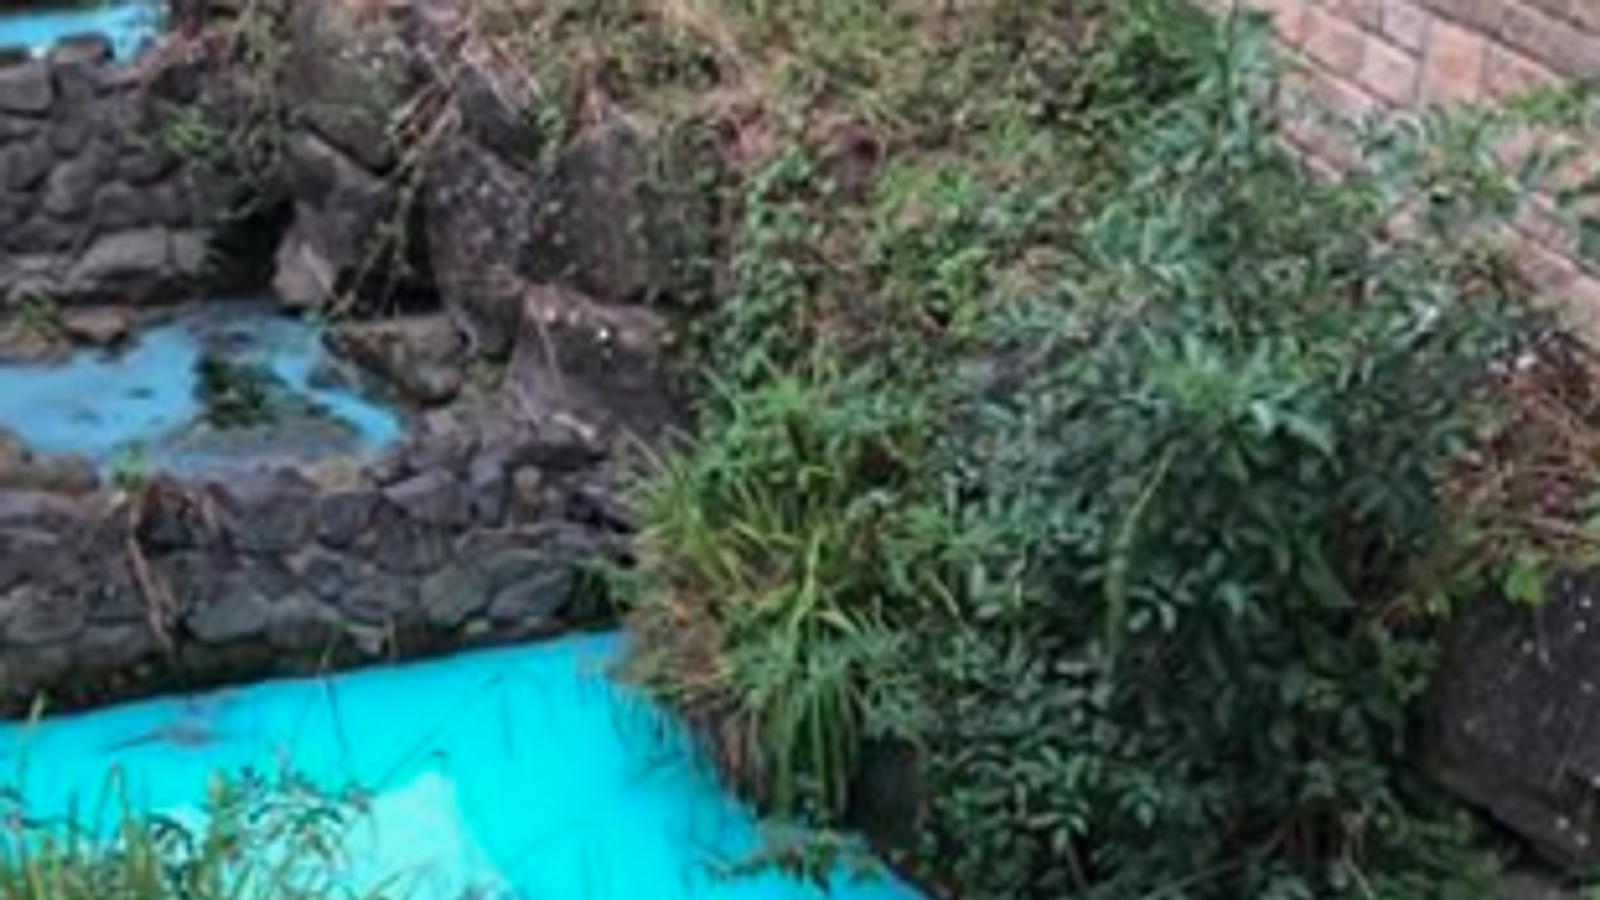 Mystery substance turns river tributary bright blue